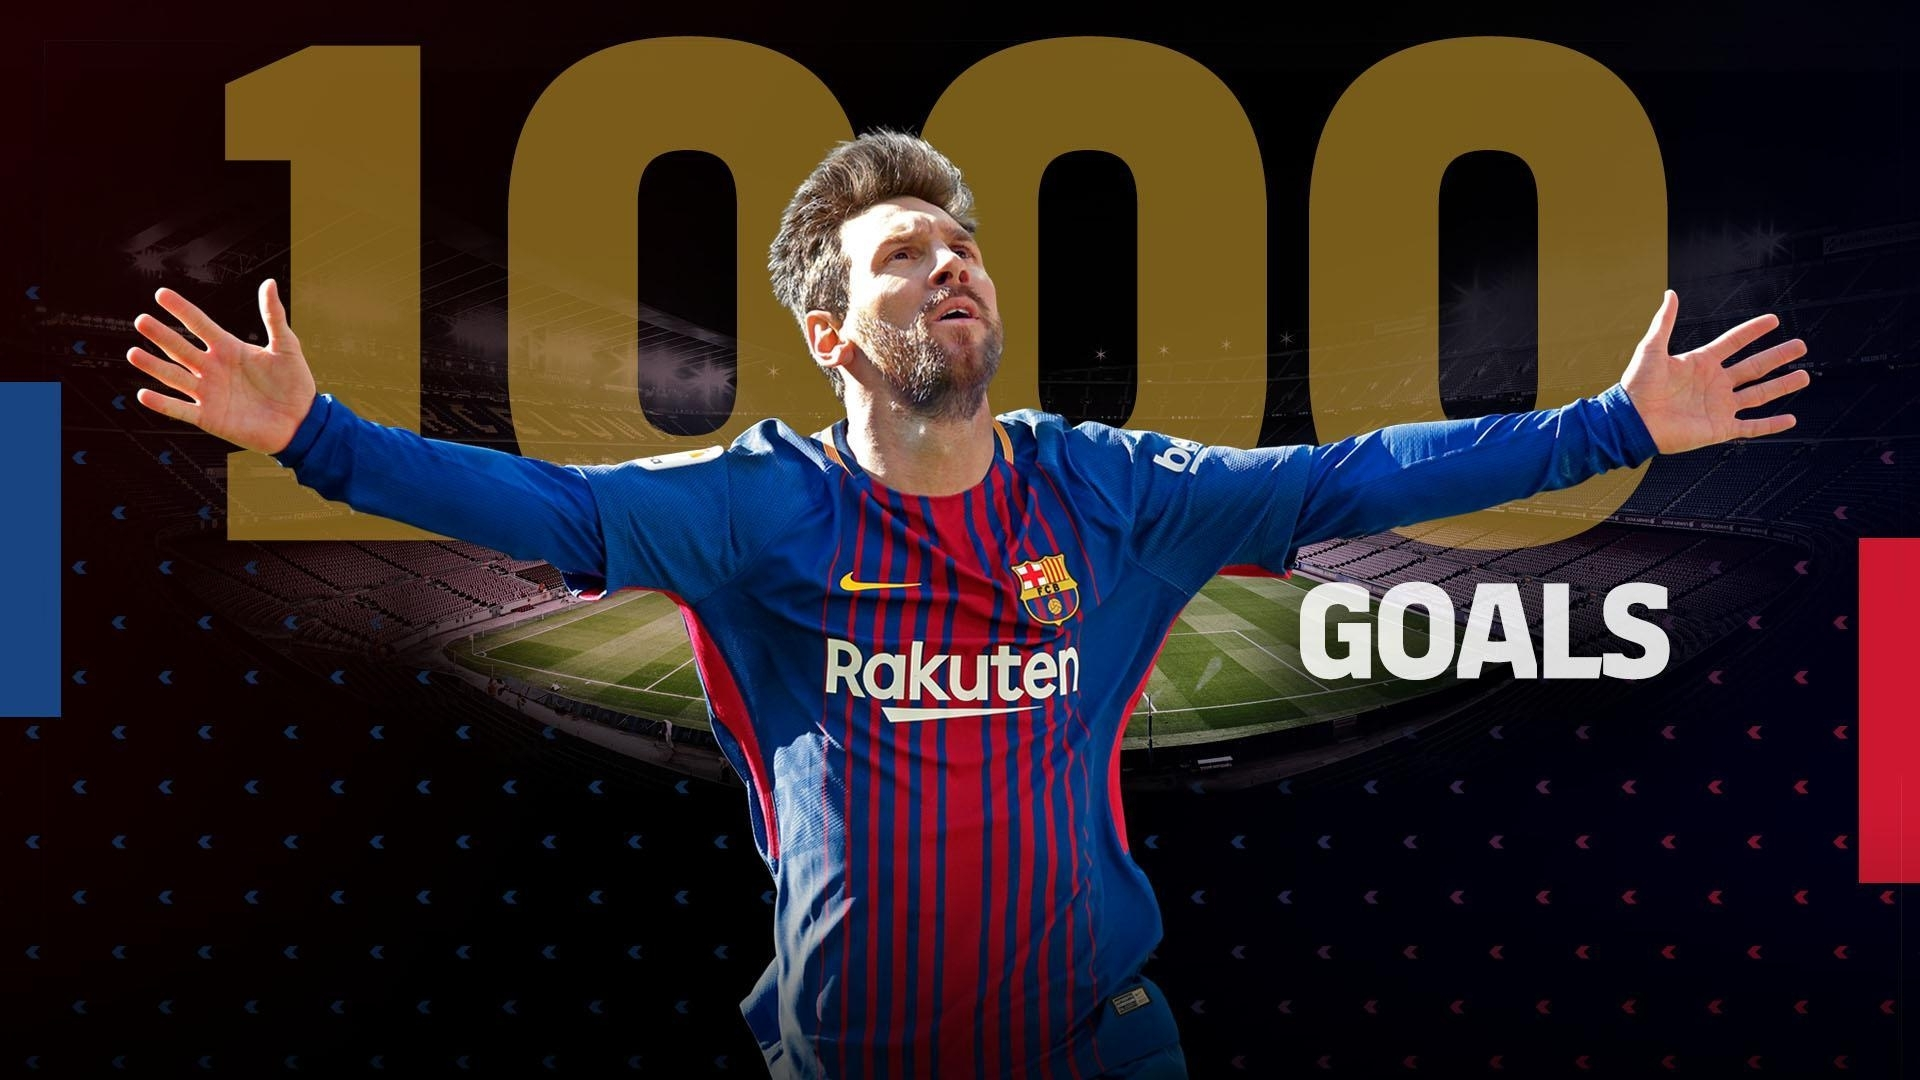 Lionel Messi Reaches 1,000 Goals As A Footballer